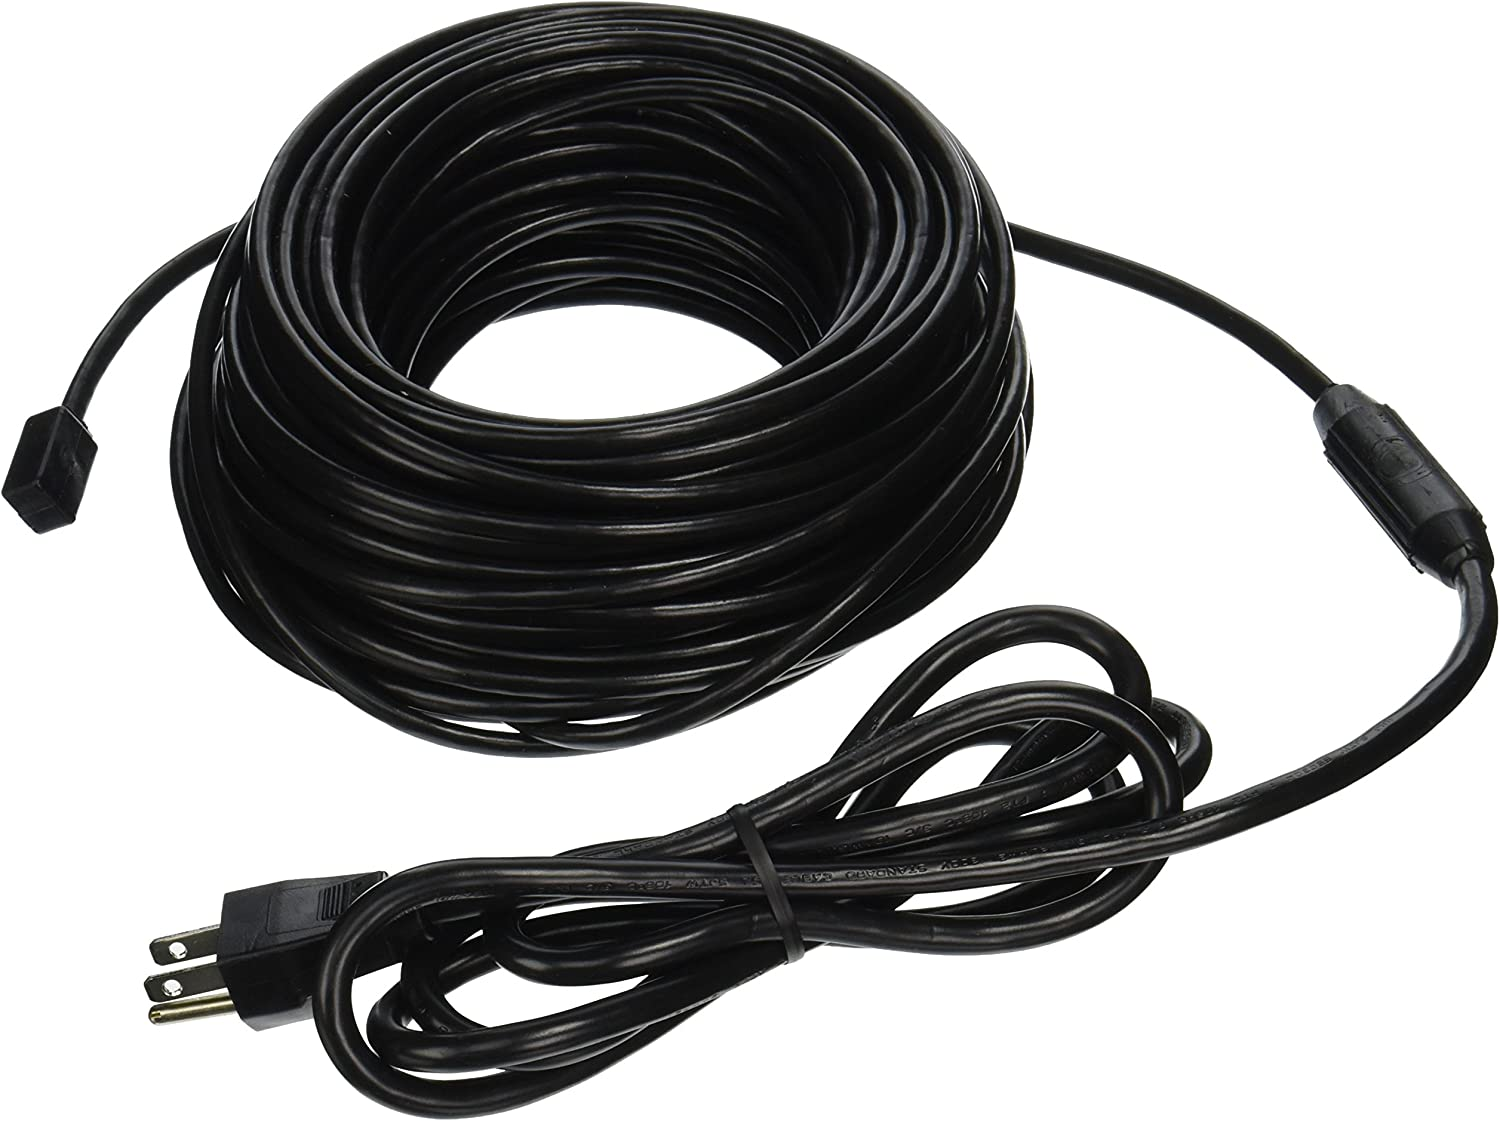 Electric Roof Cable 120V Frost King RC60 60 Feet 5 Watts Per Foot